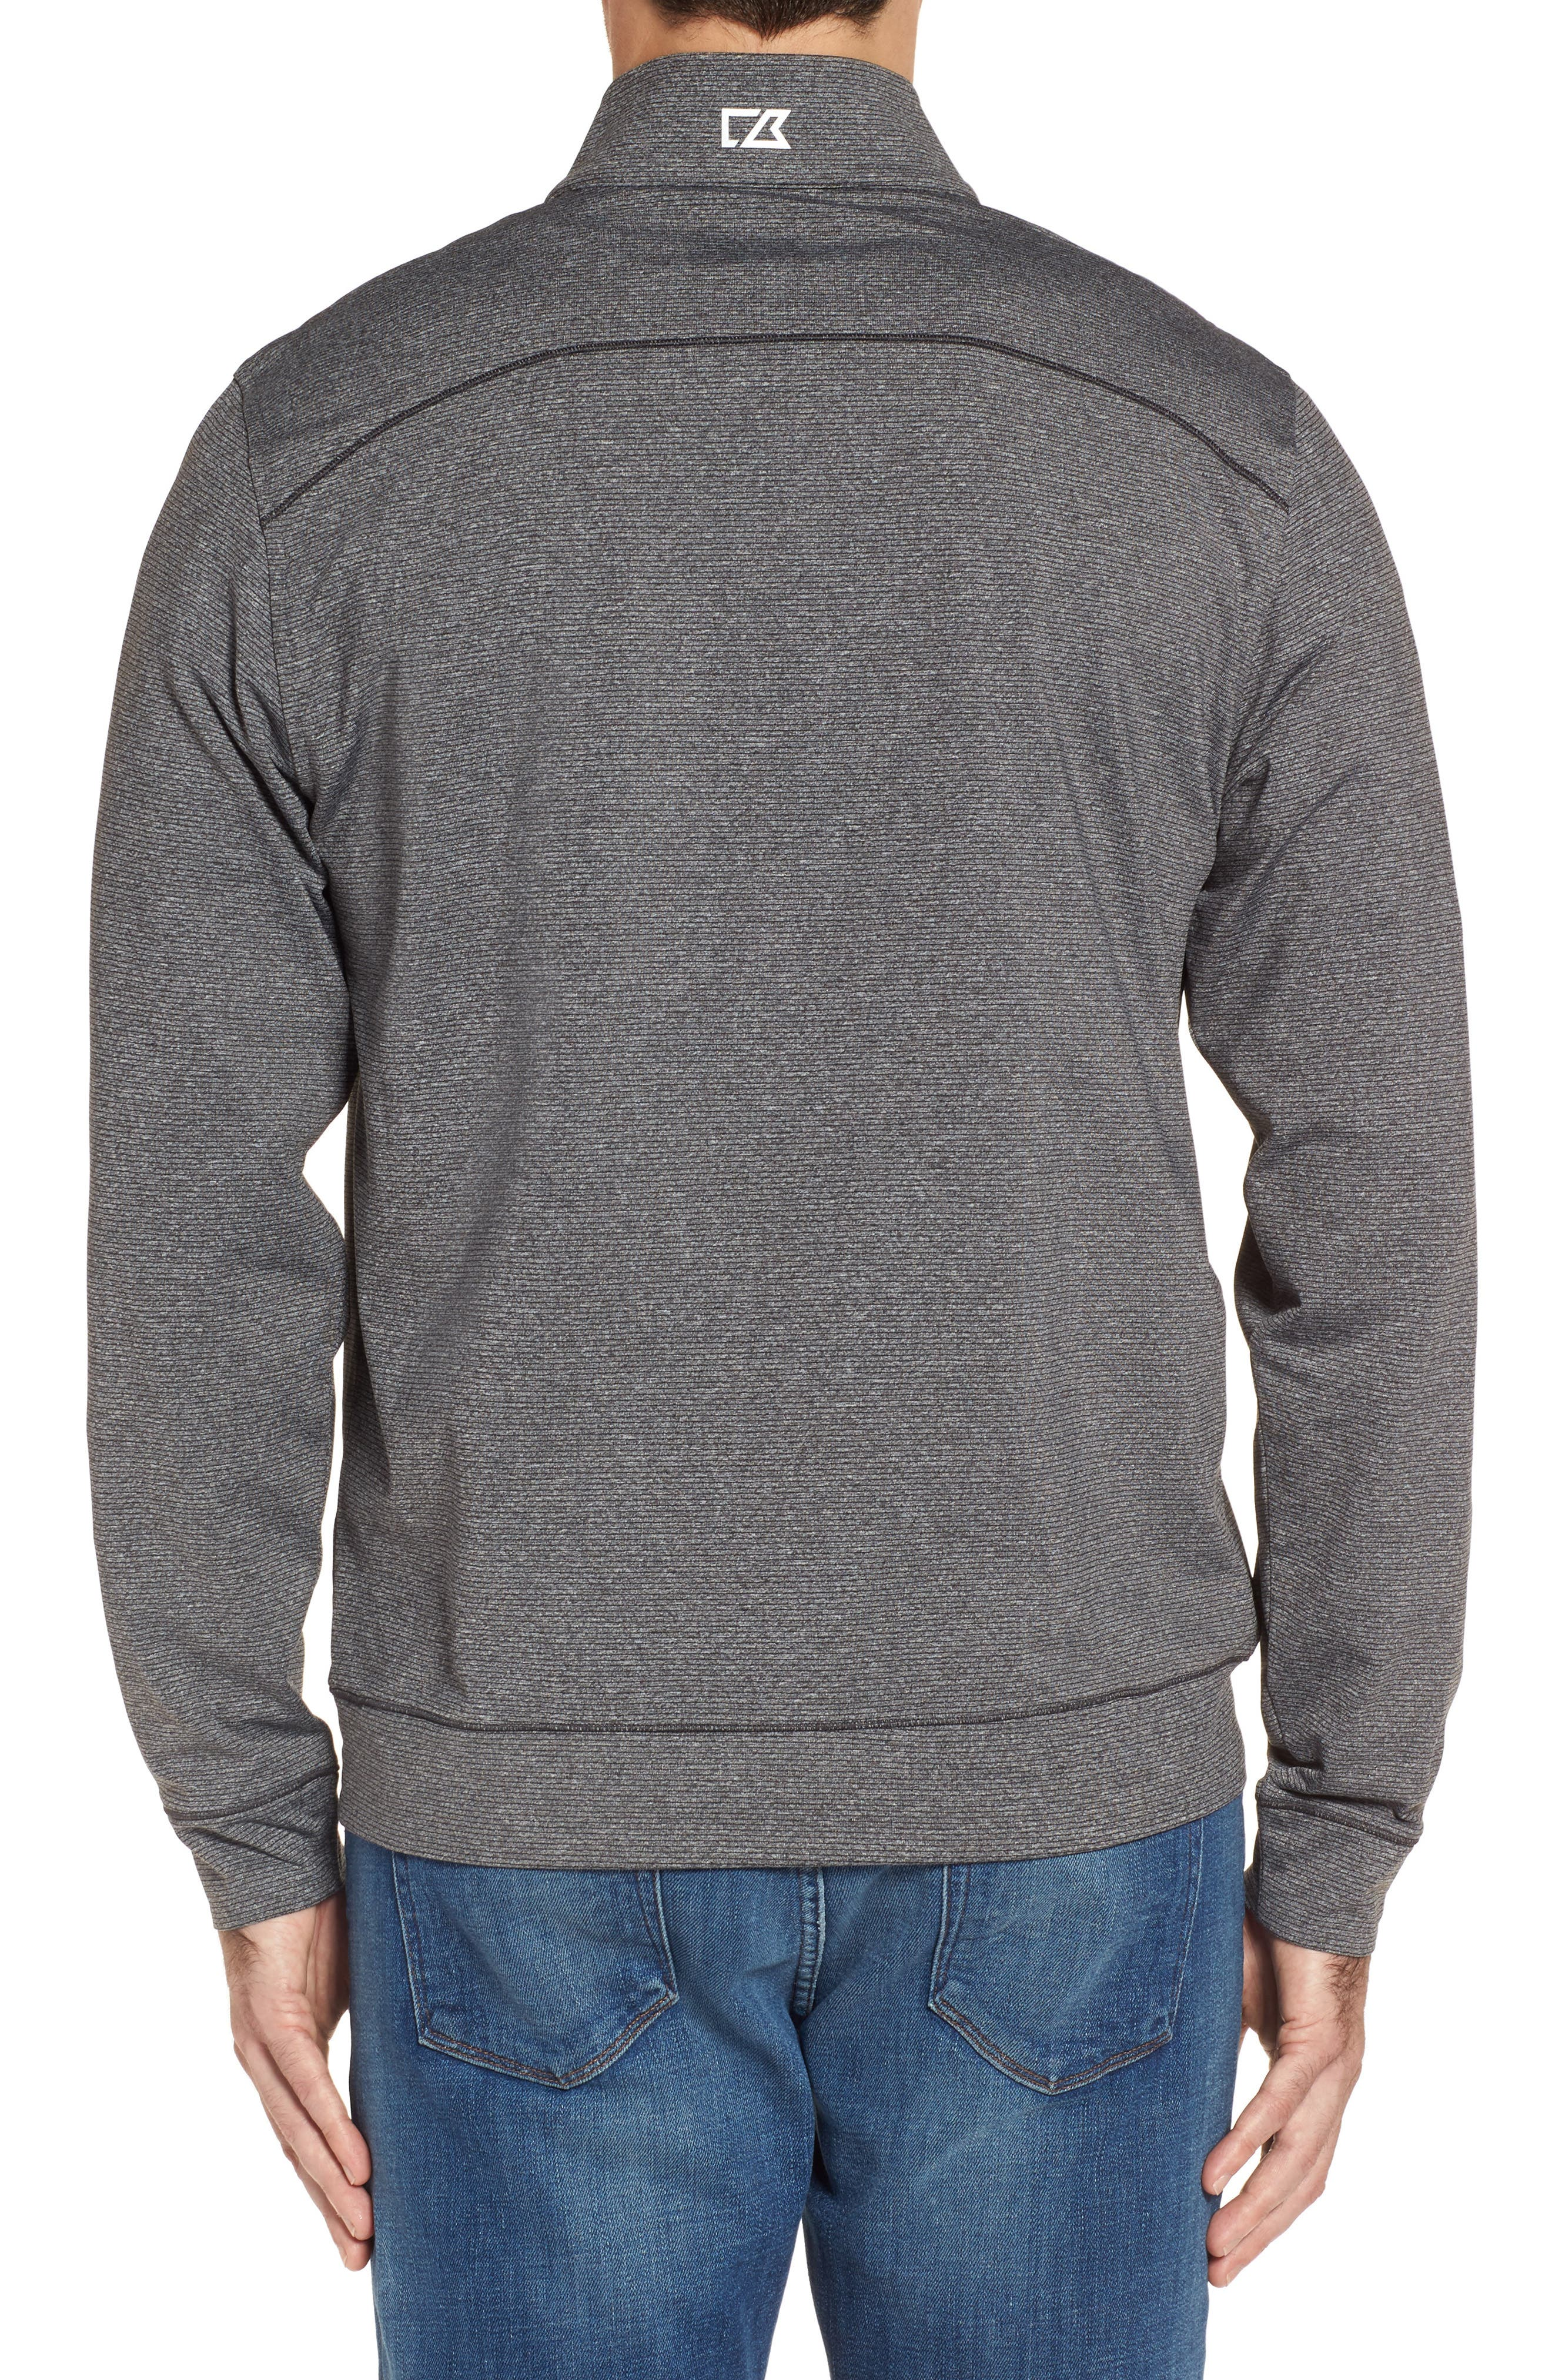 Shoreline - Carolina Panthers Half Zip Pullover,                             Alternate thumbnail 2, color,                             Charcoal Heather